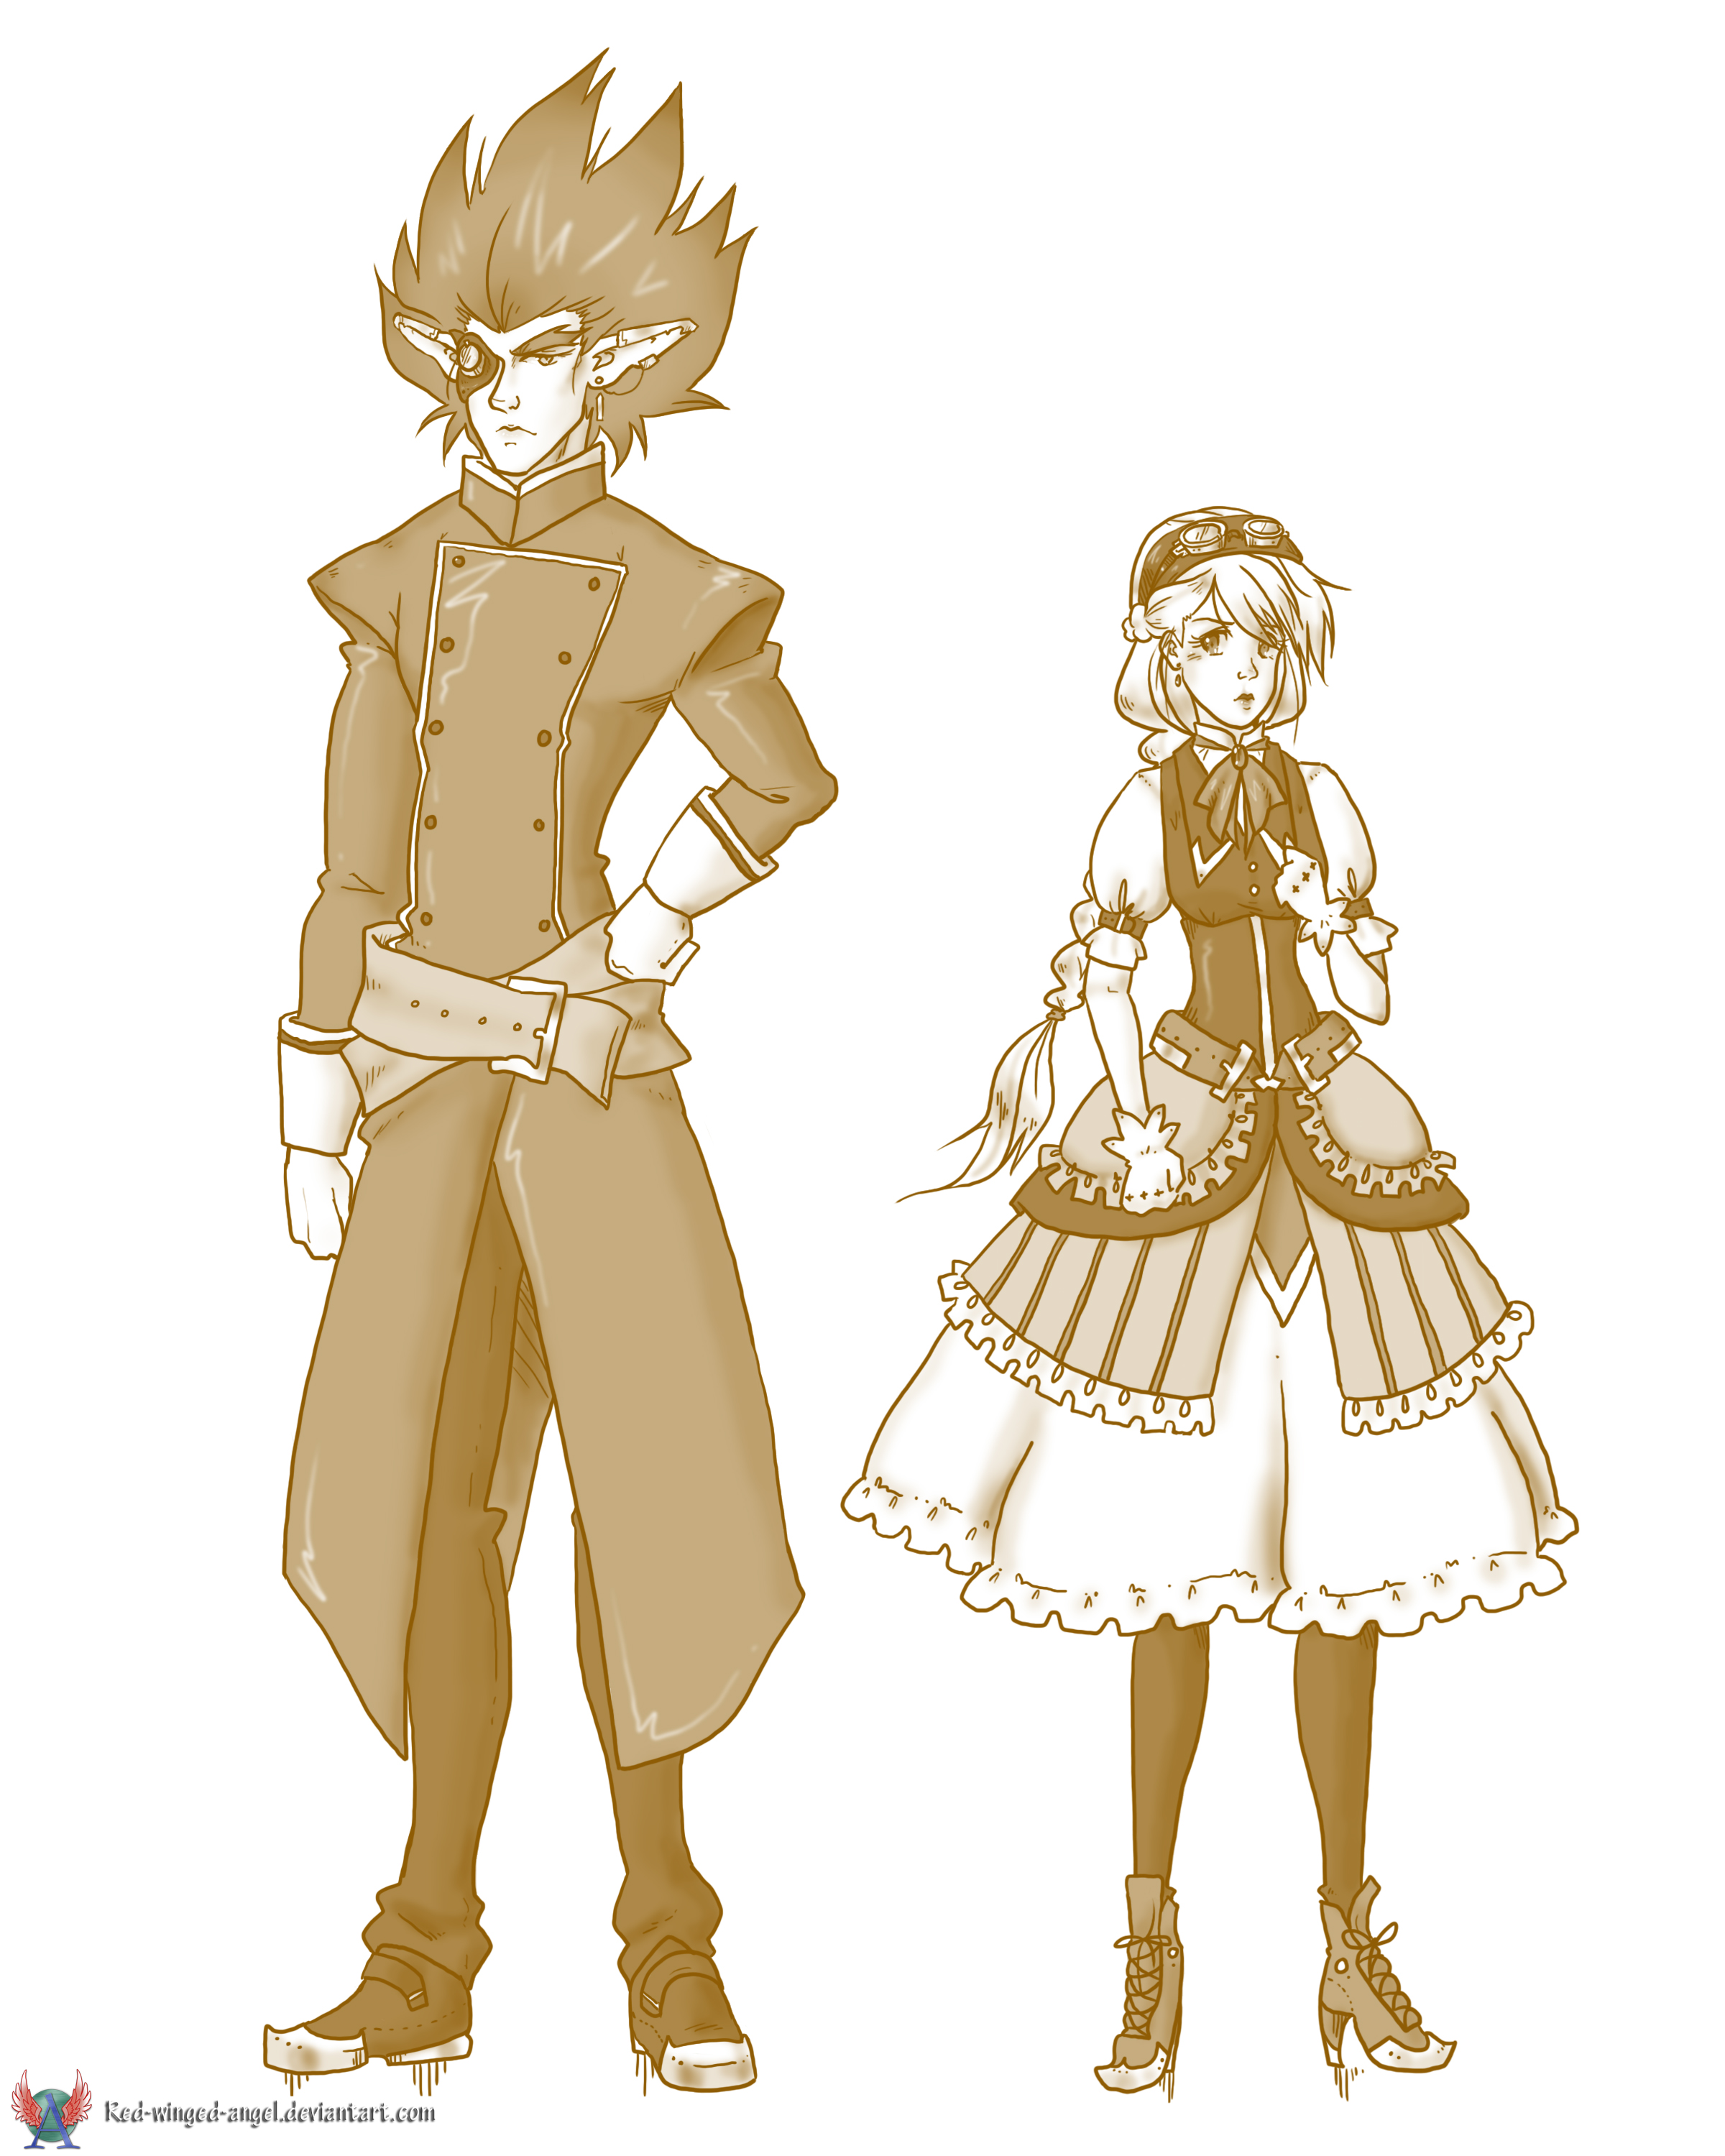 OTP 15 Different Clothing Style (Steampunk) by red-winged-angel on DeviantArt